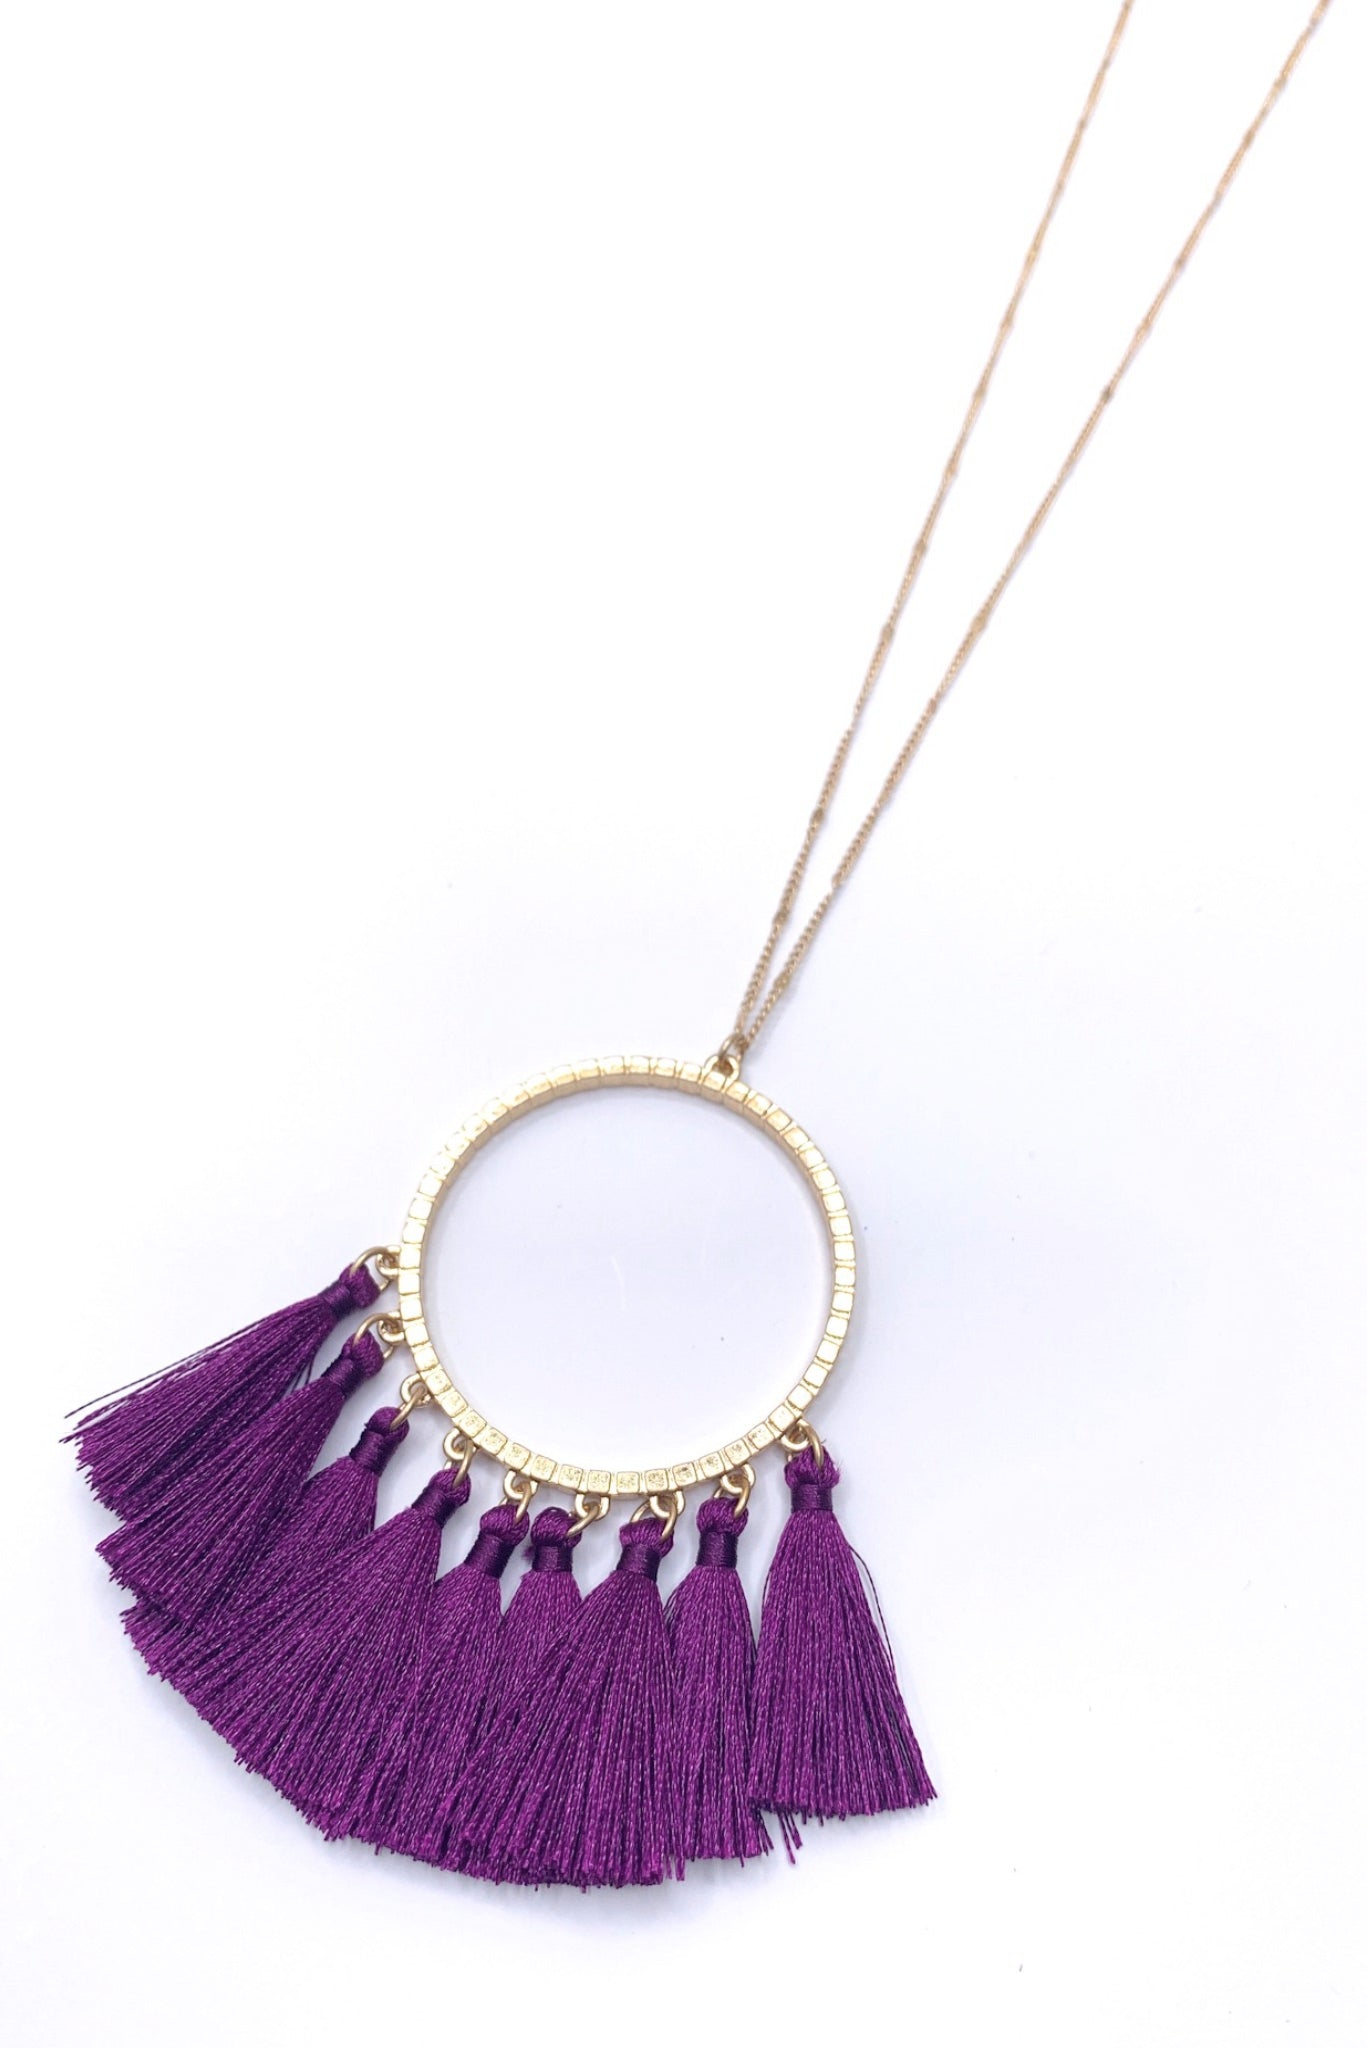 Gold Necklace with Purple Fringe